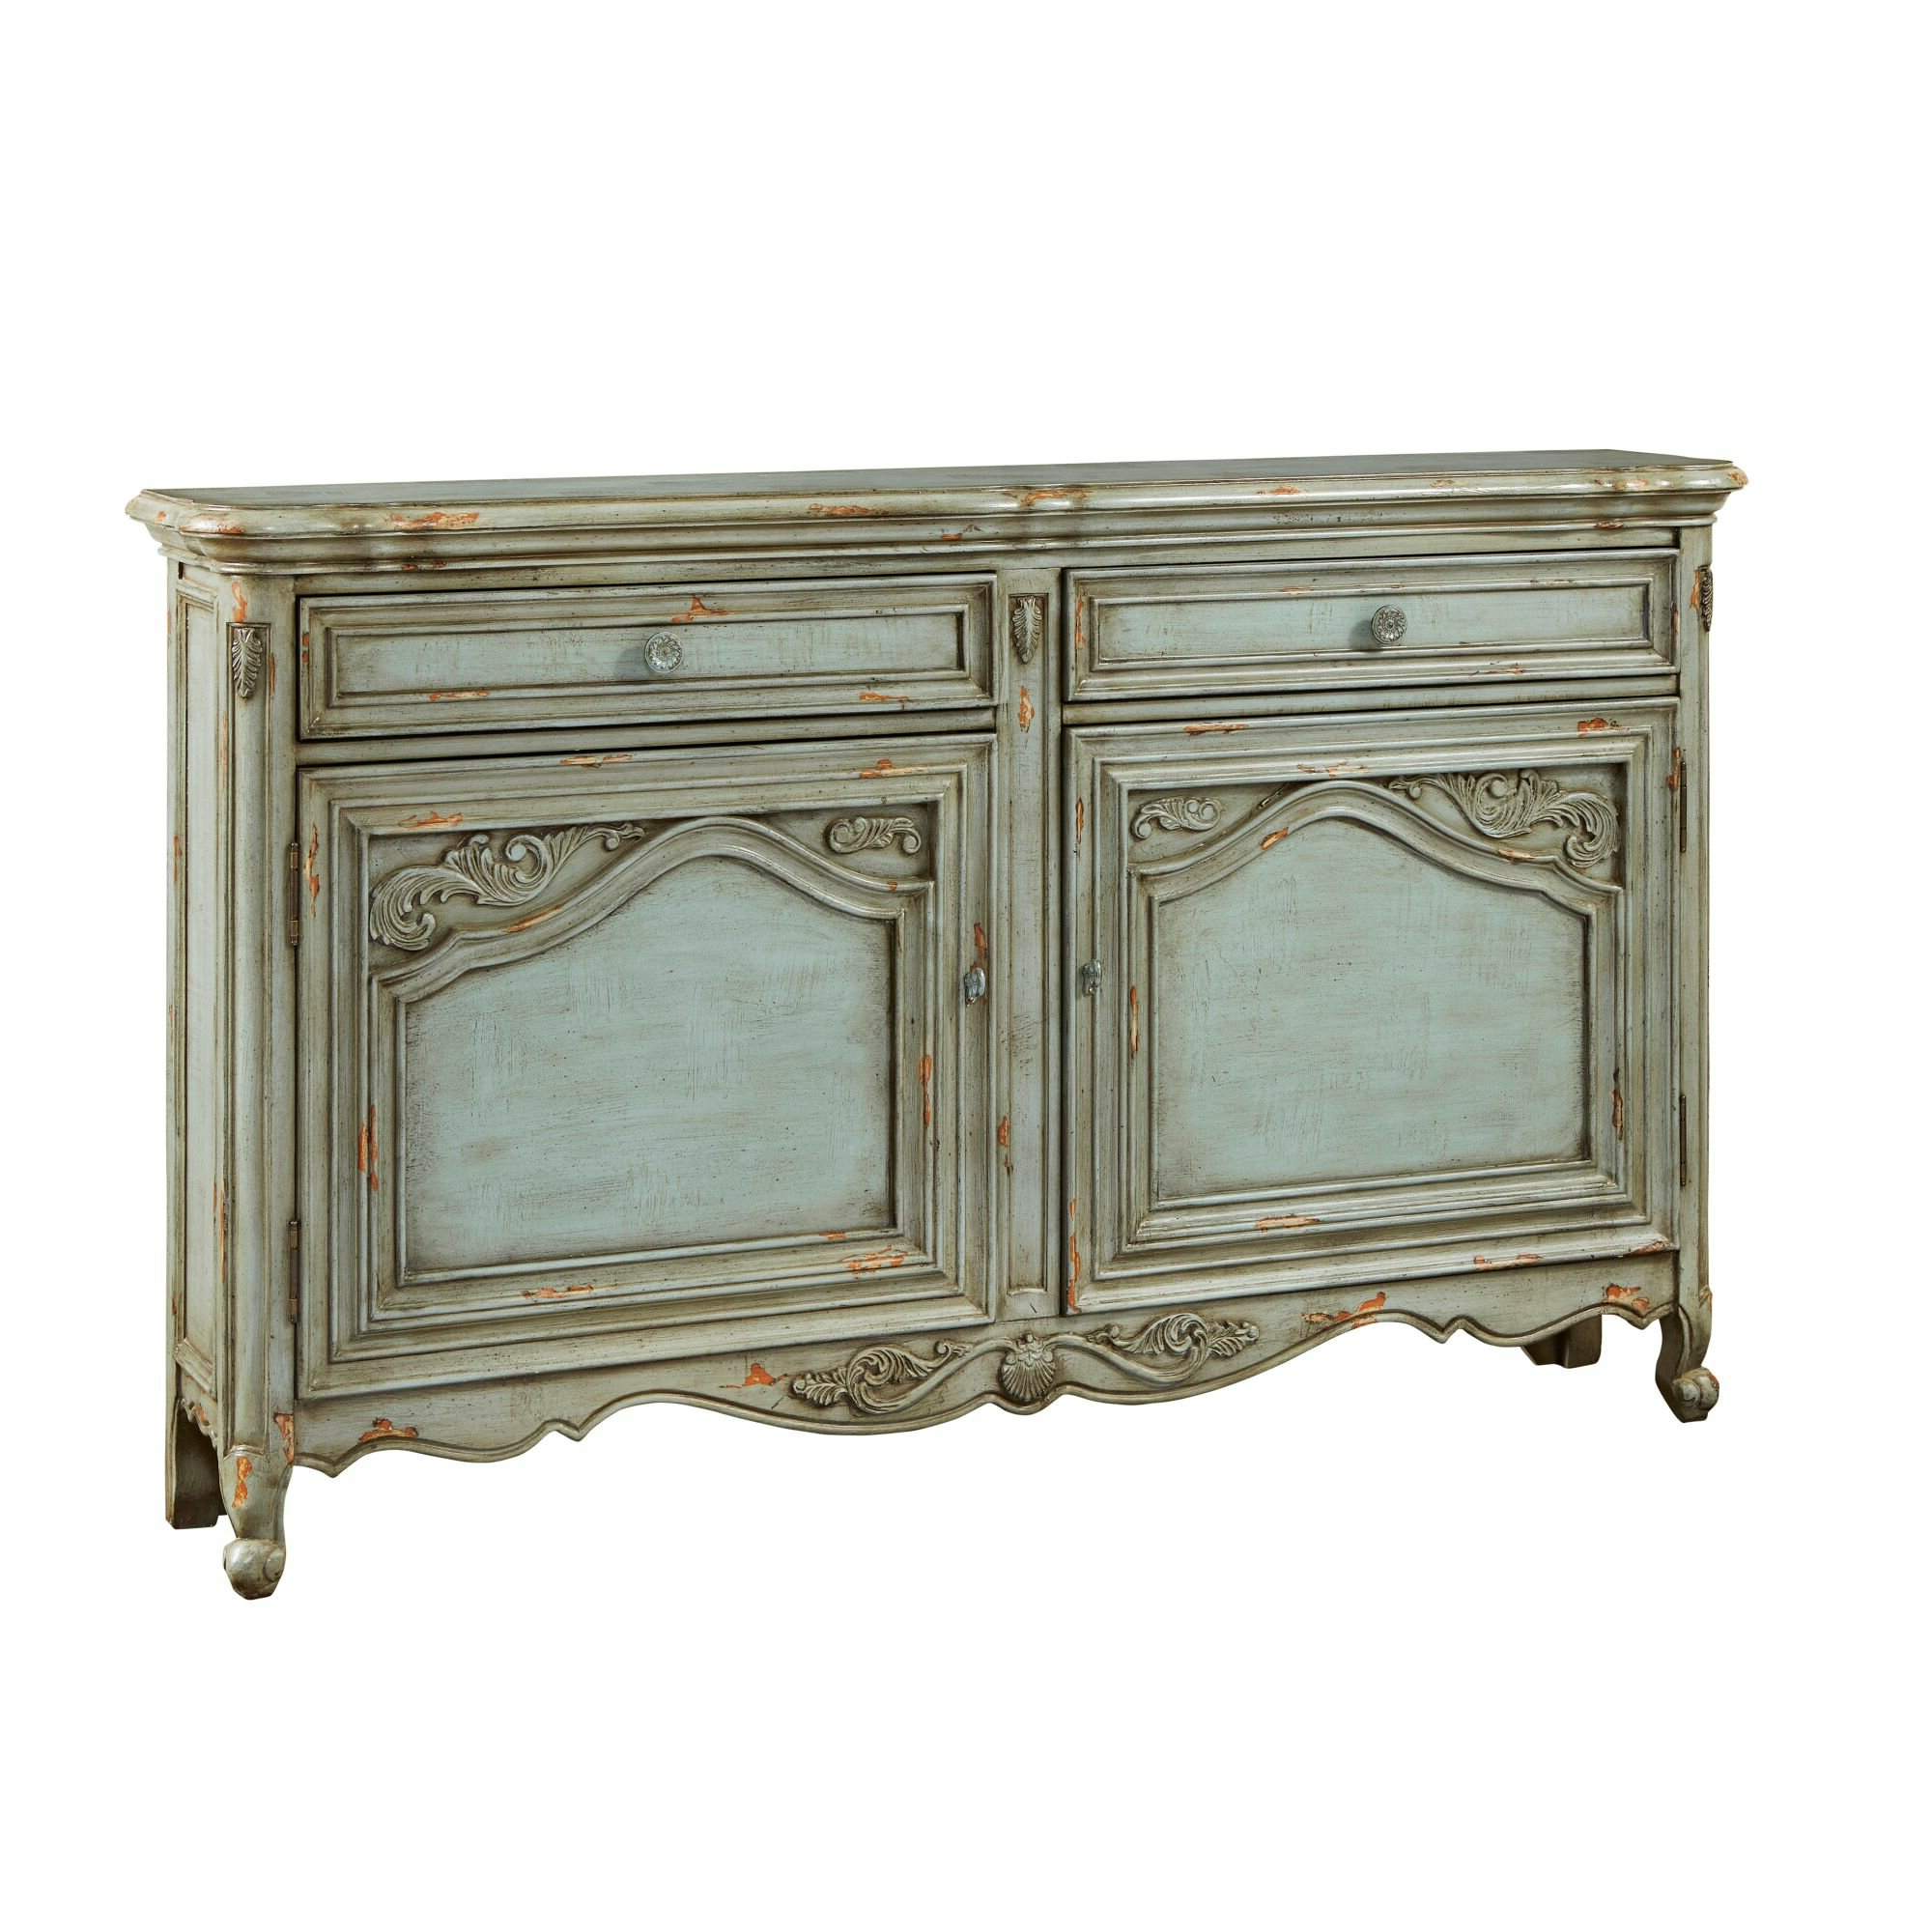 Farmhouse & Rustic Distressed Finish Sideboards & Buffets Intended For Best And Newest Seiling Sideboards (Gallery 16 of 20)